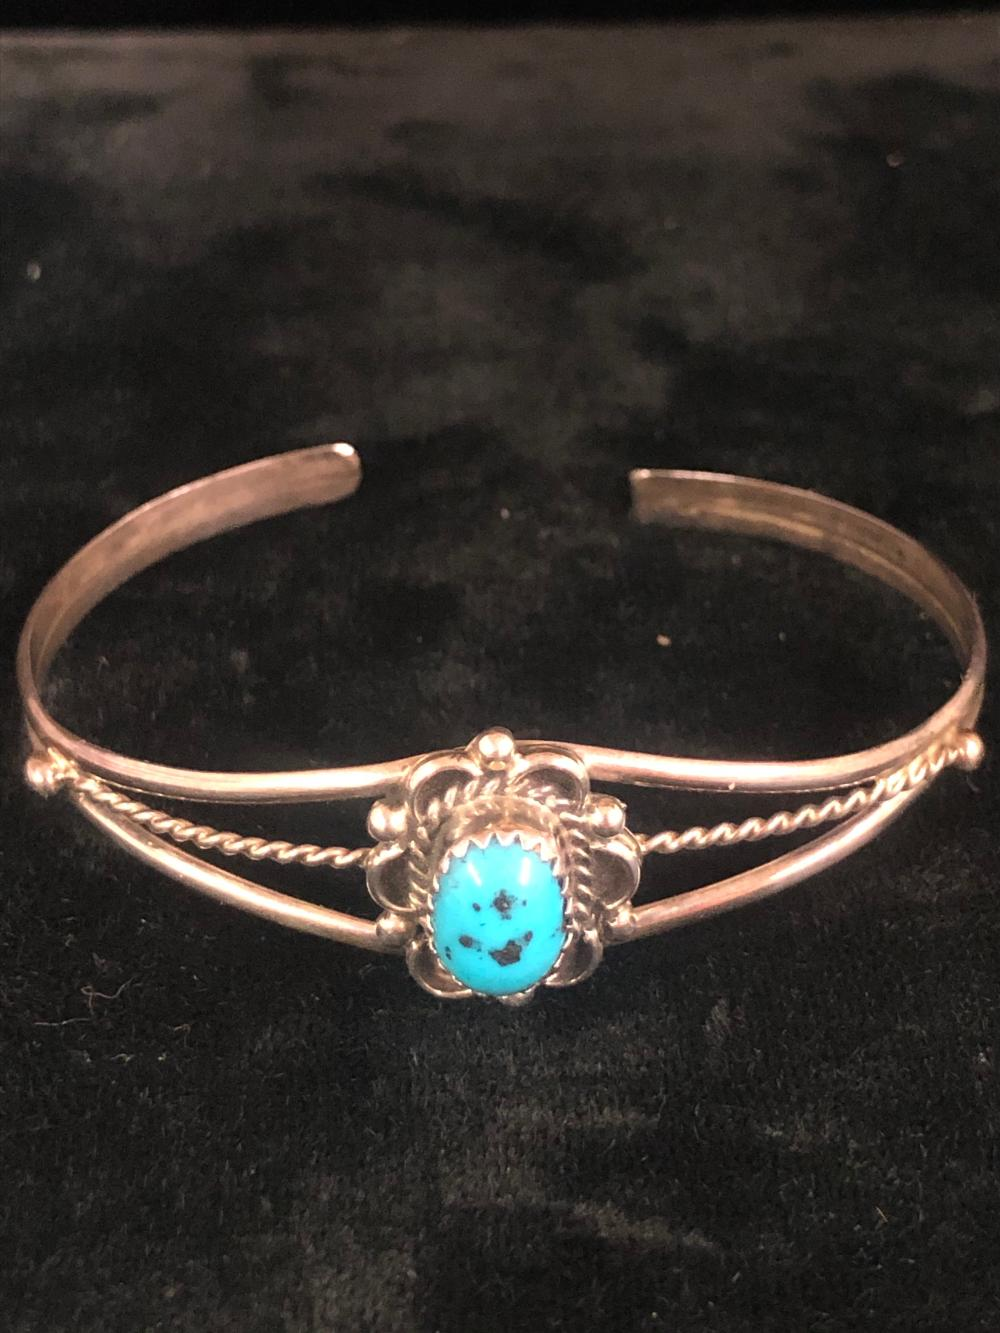 Turquoise with flower design sterling silver cuff bracelet